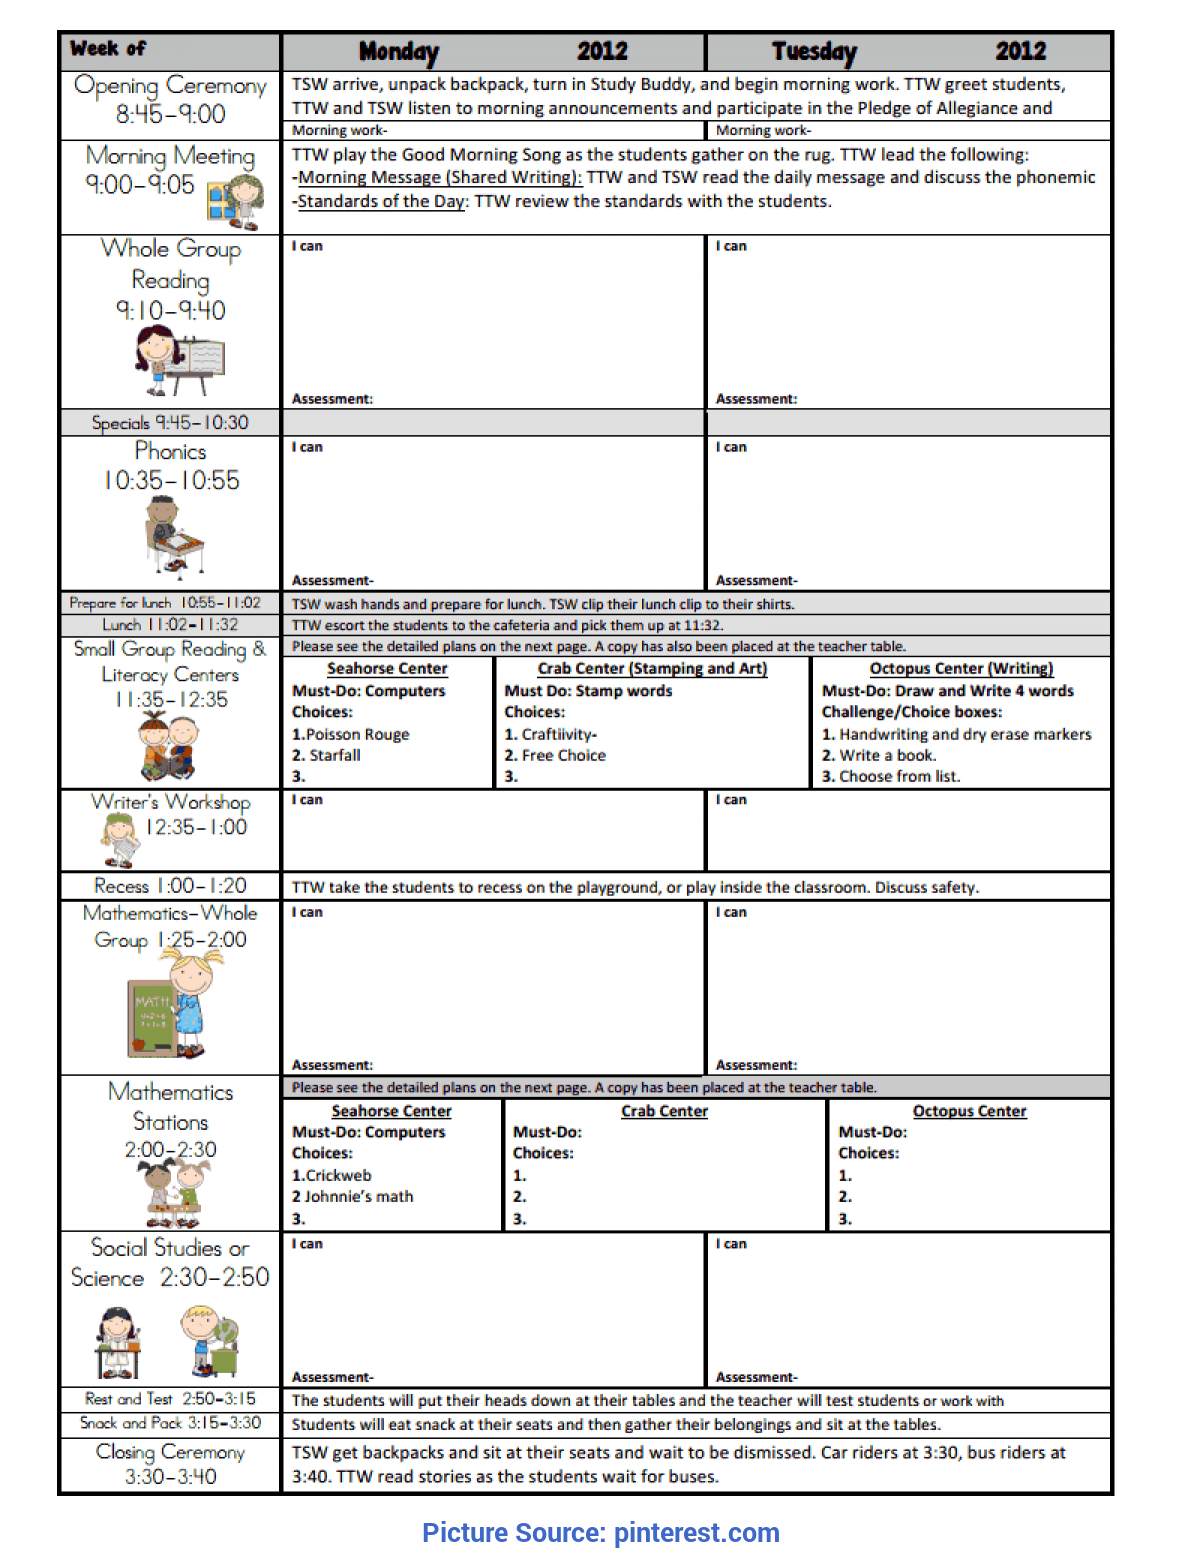 Typical Jan Richardson Lesson Plan Template Lesson Plan Templates 2012-1213.Pdf - Google Drive | Educatio